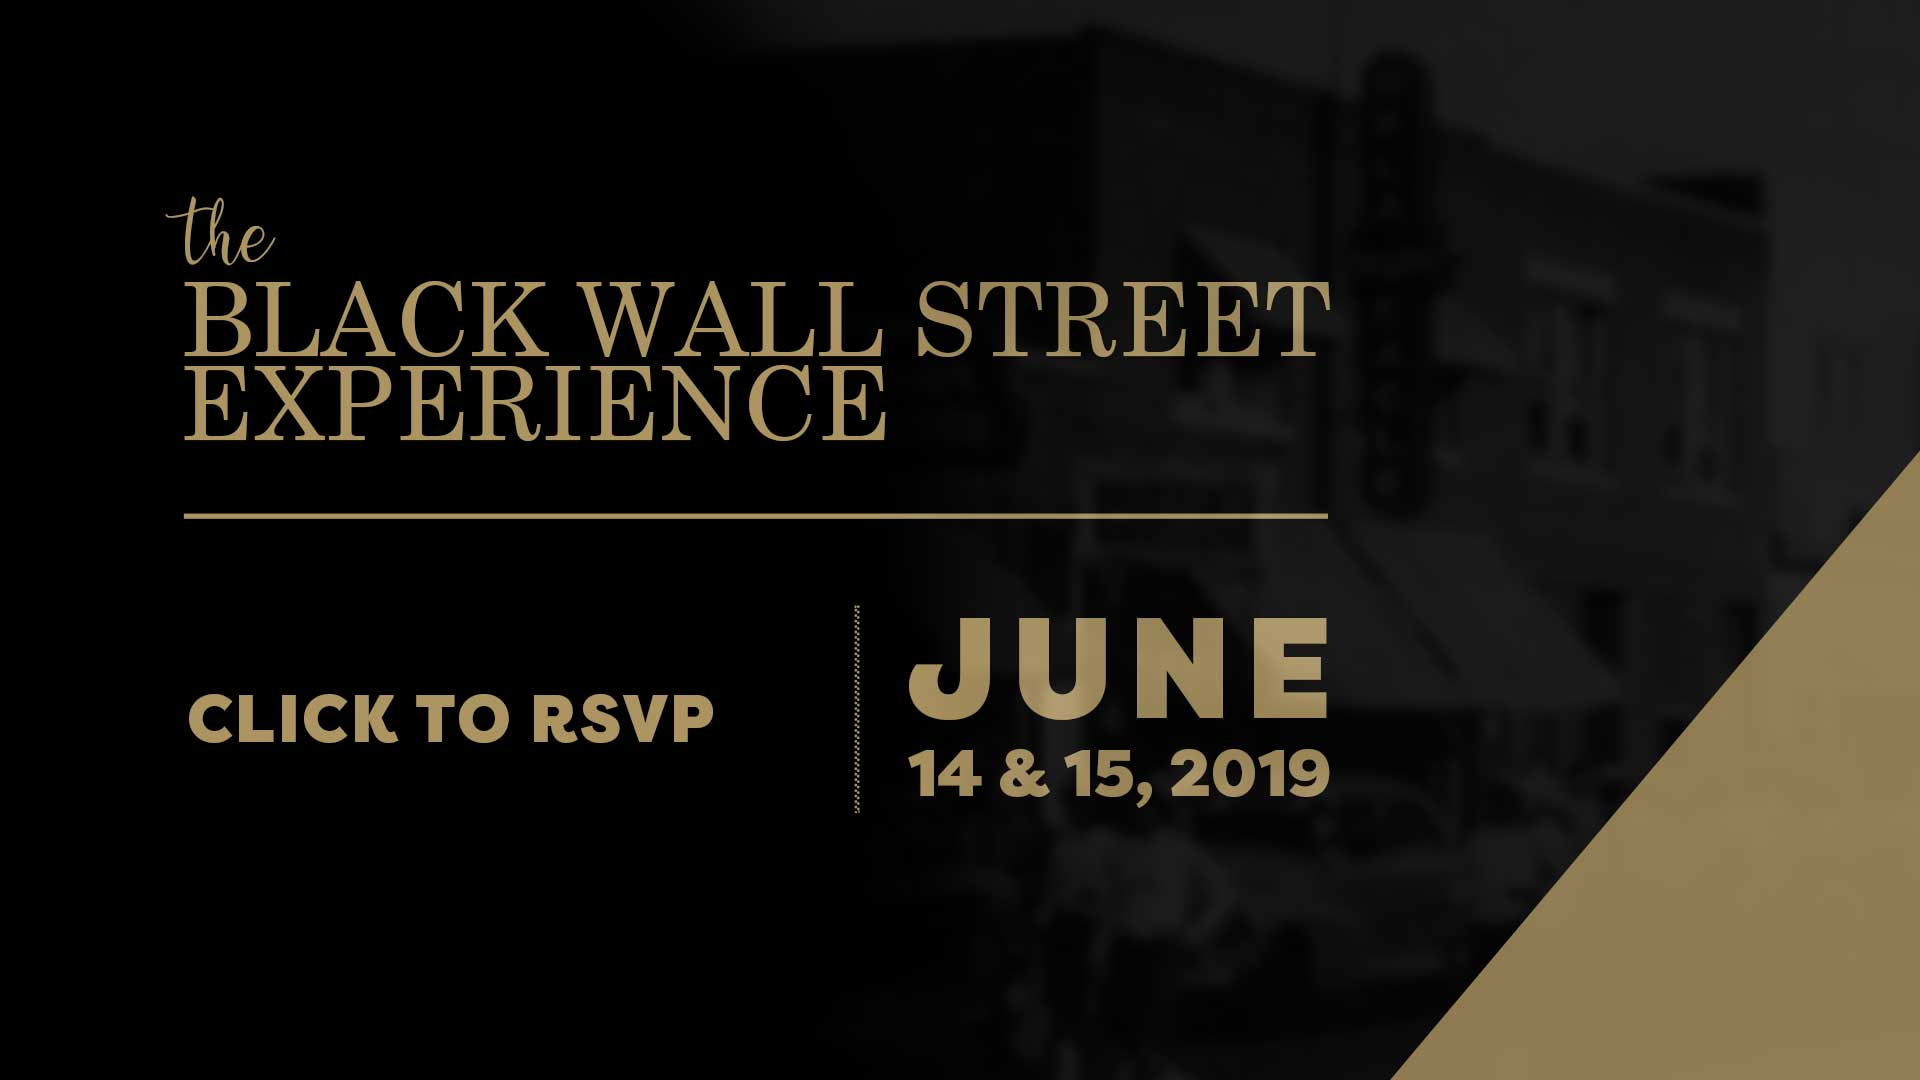 The Black Wall Street Experience: June 14-15, 2019